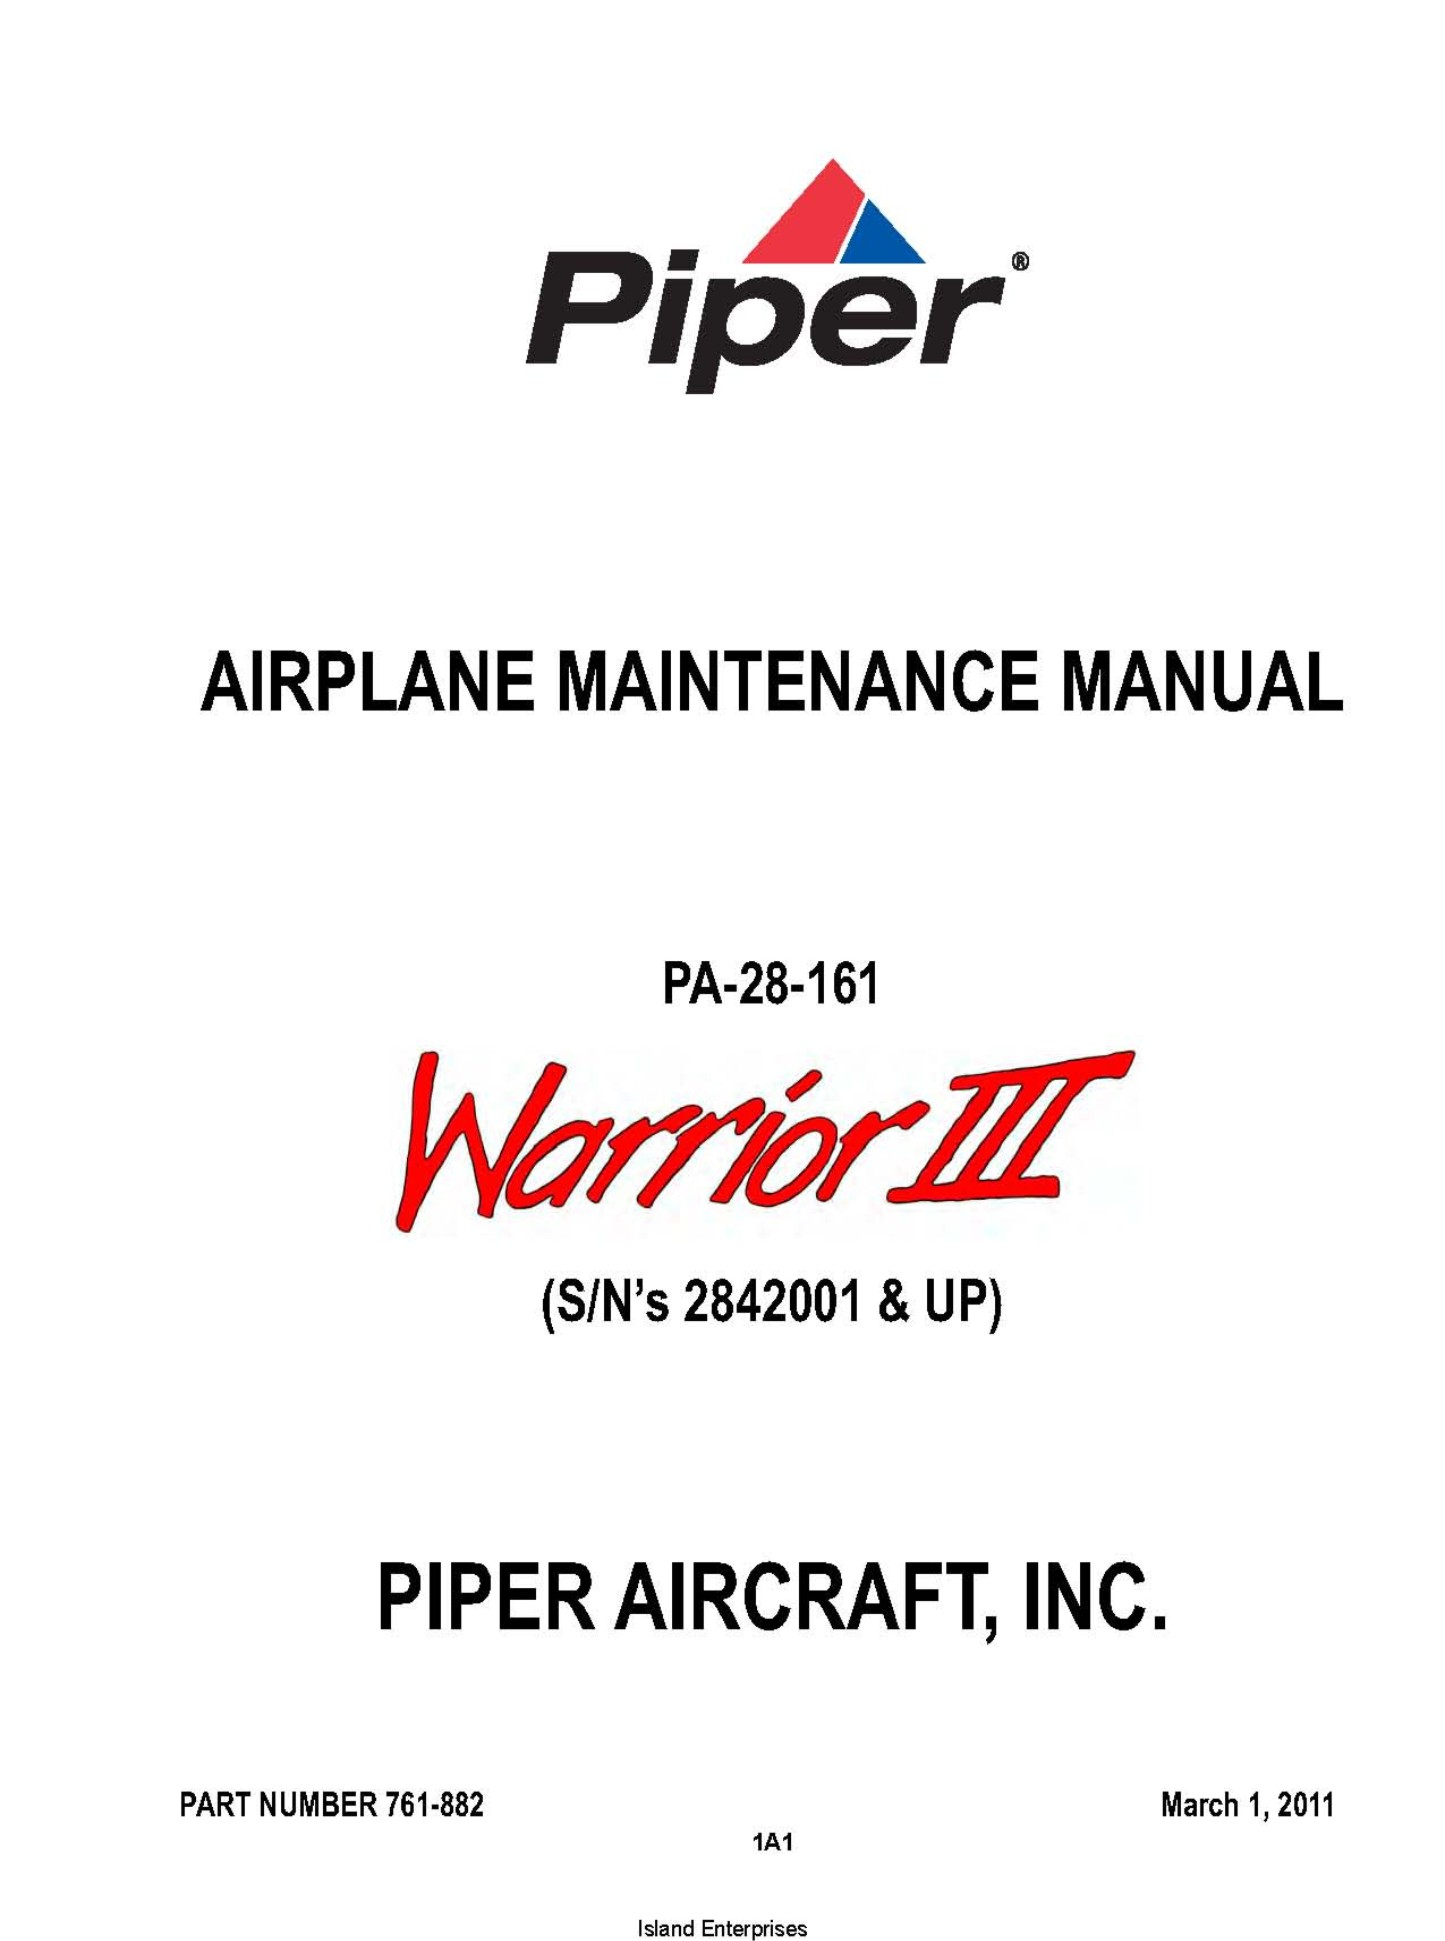 Piper PA-28-161 Warrior III (S/N's 2842001 & UP